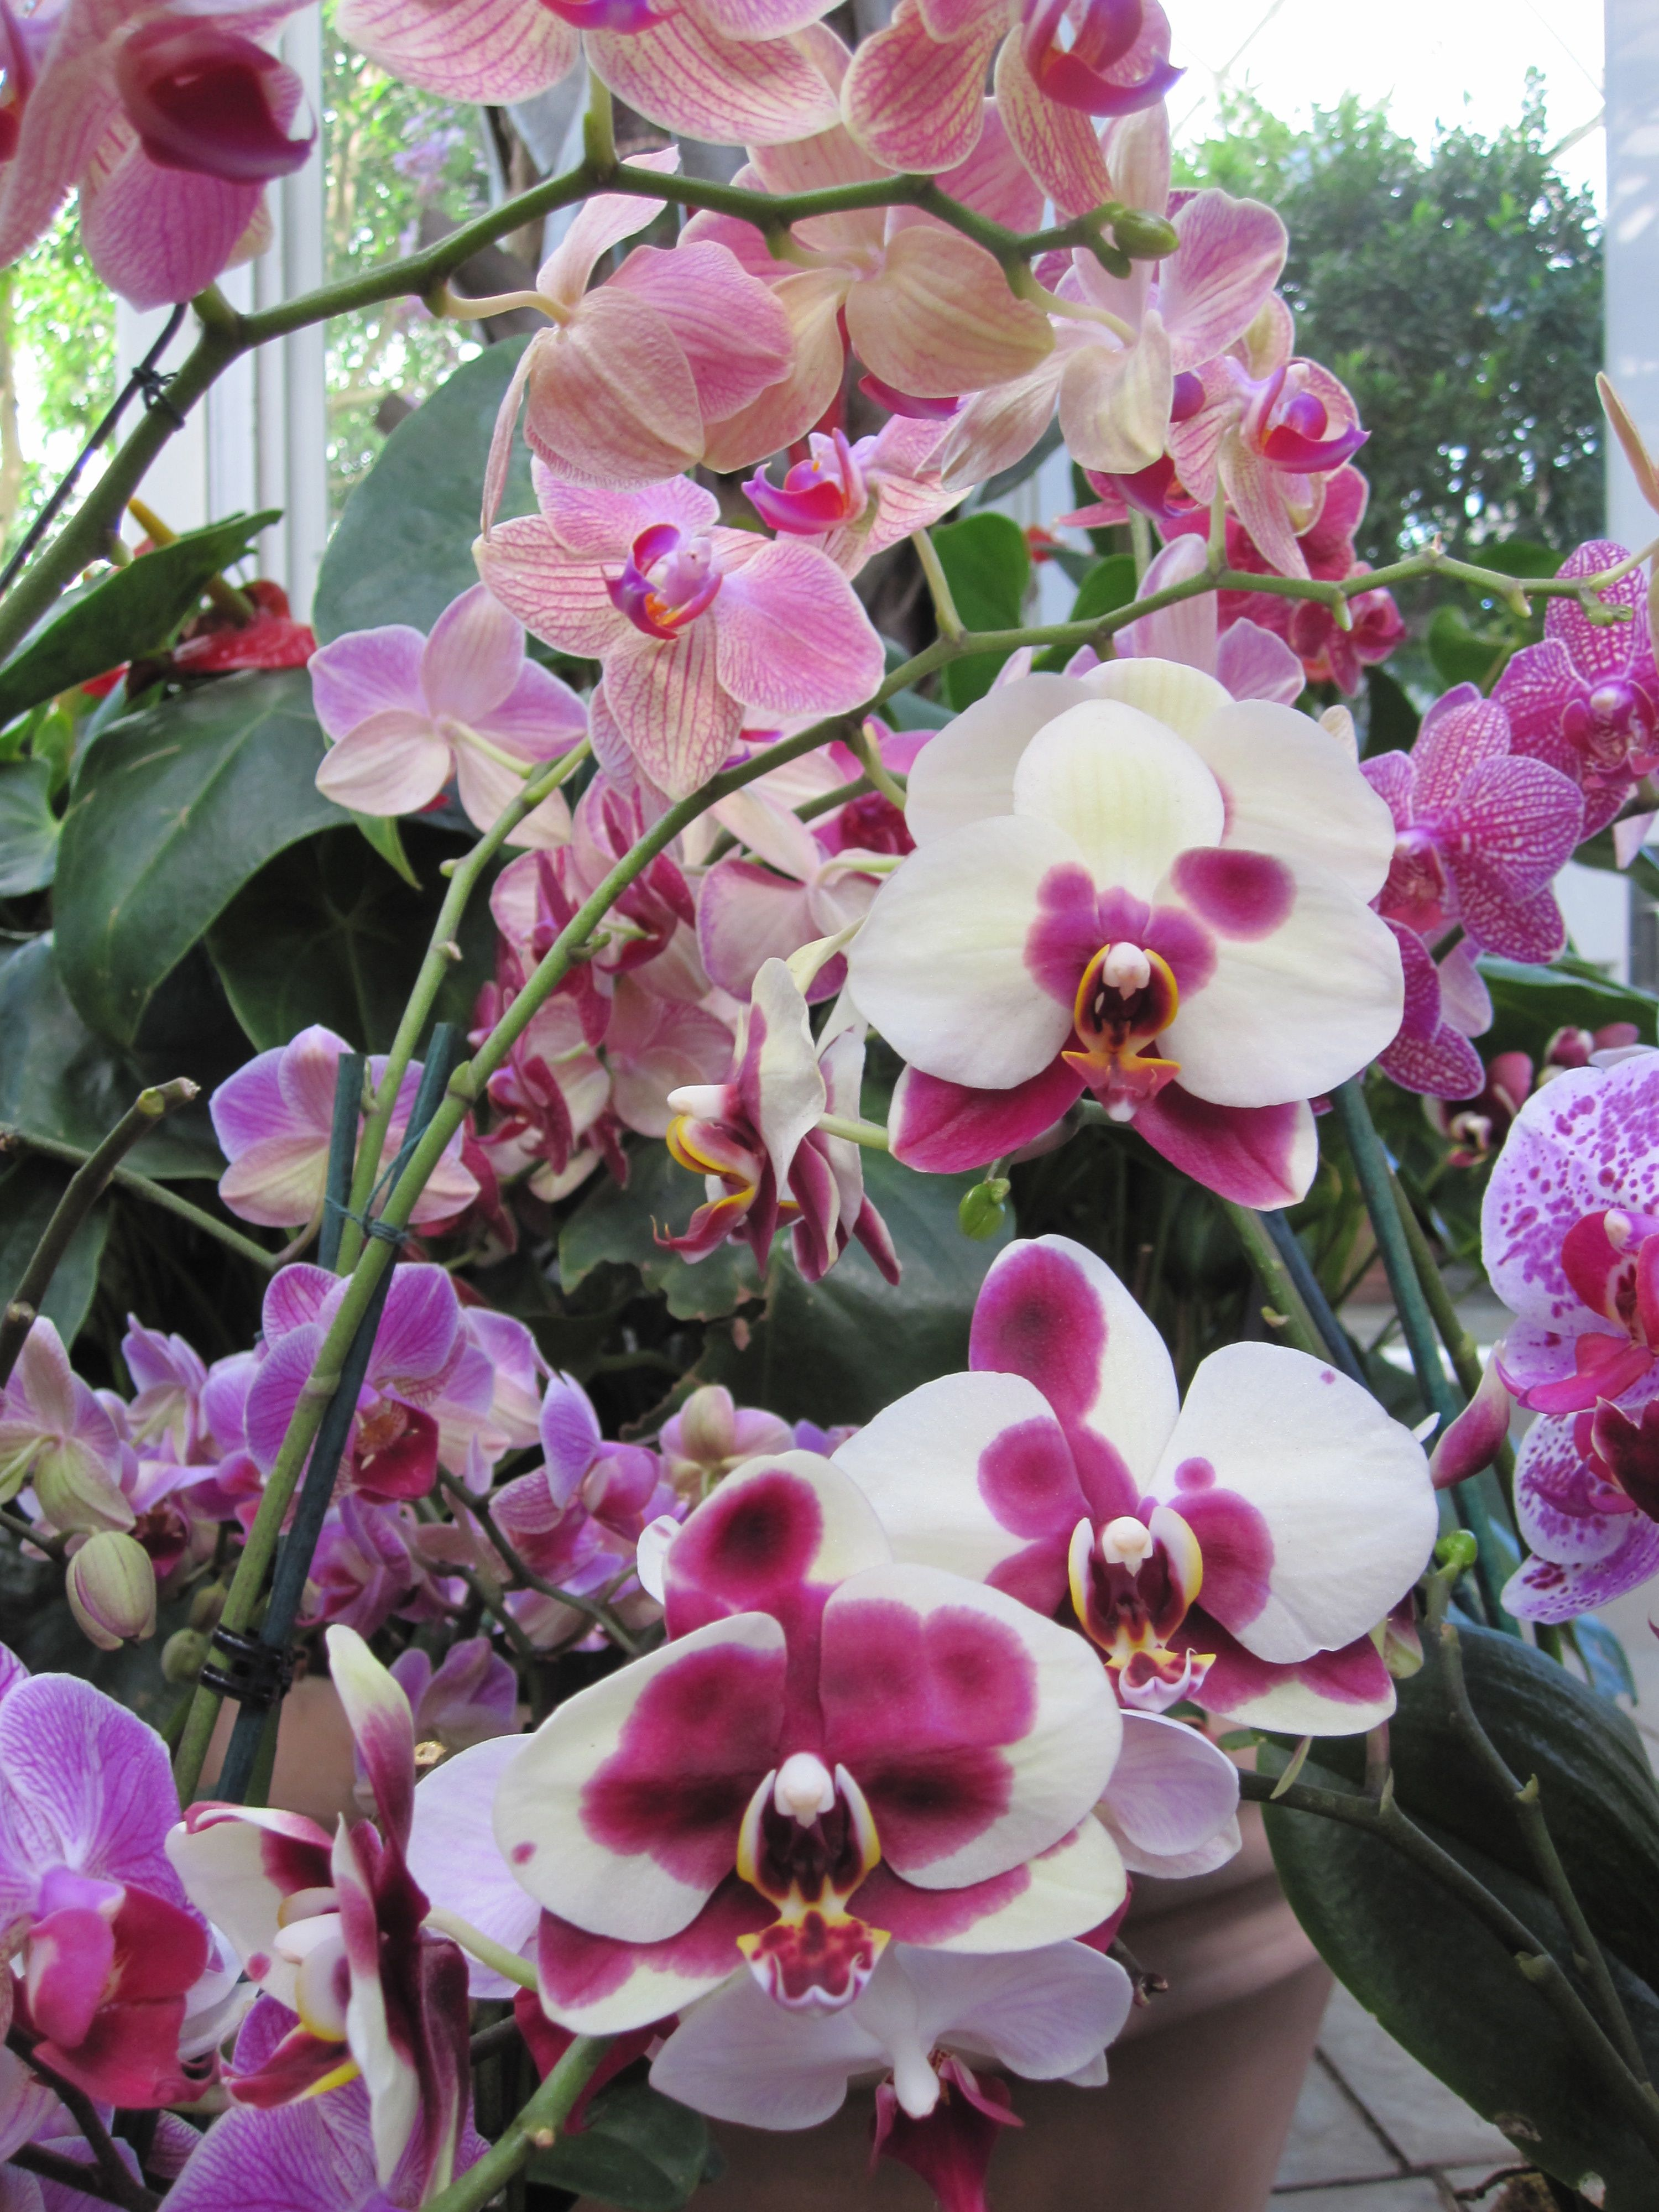 how to cut a phalaenopsis orchid spike brooklyn orchids. Black Bedroom Furniture Sets. Home Design Ideas